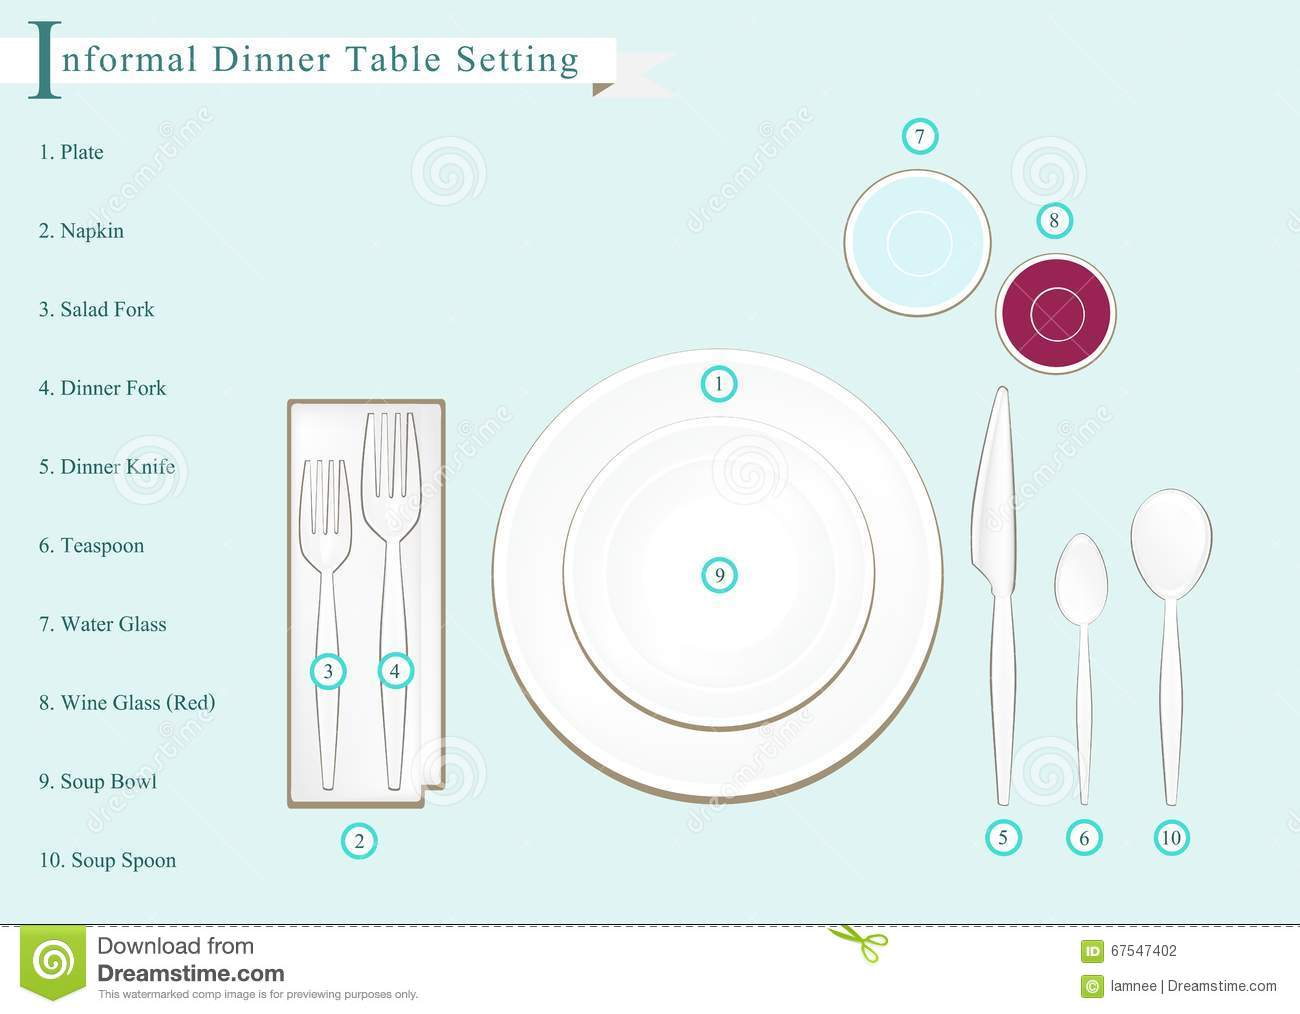 Formal dinner table setting formal dinner table setting for Table place setting